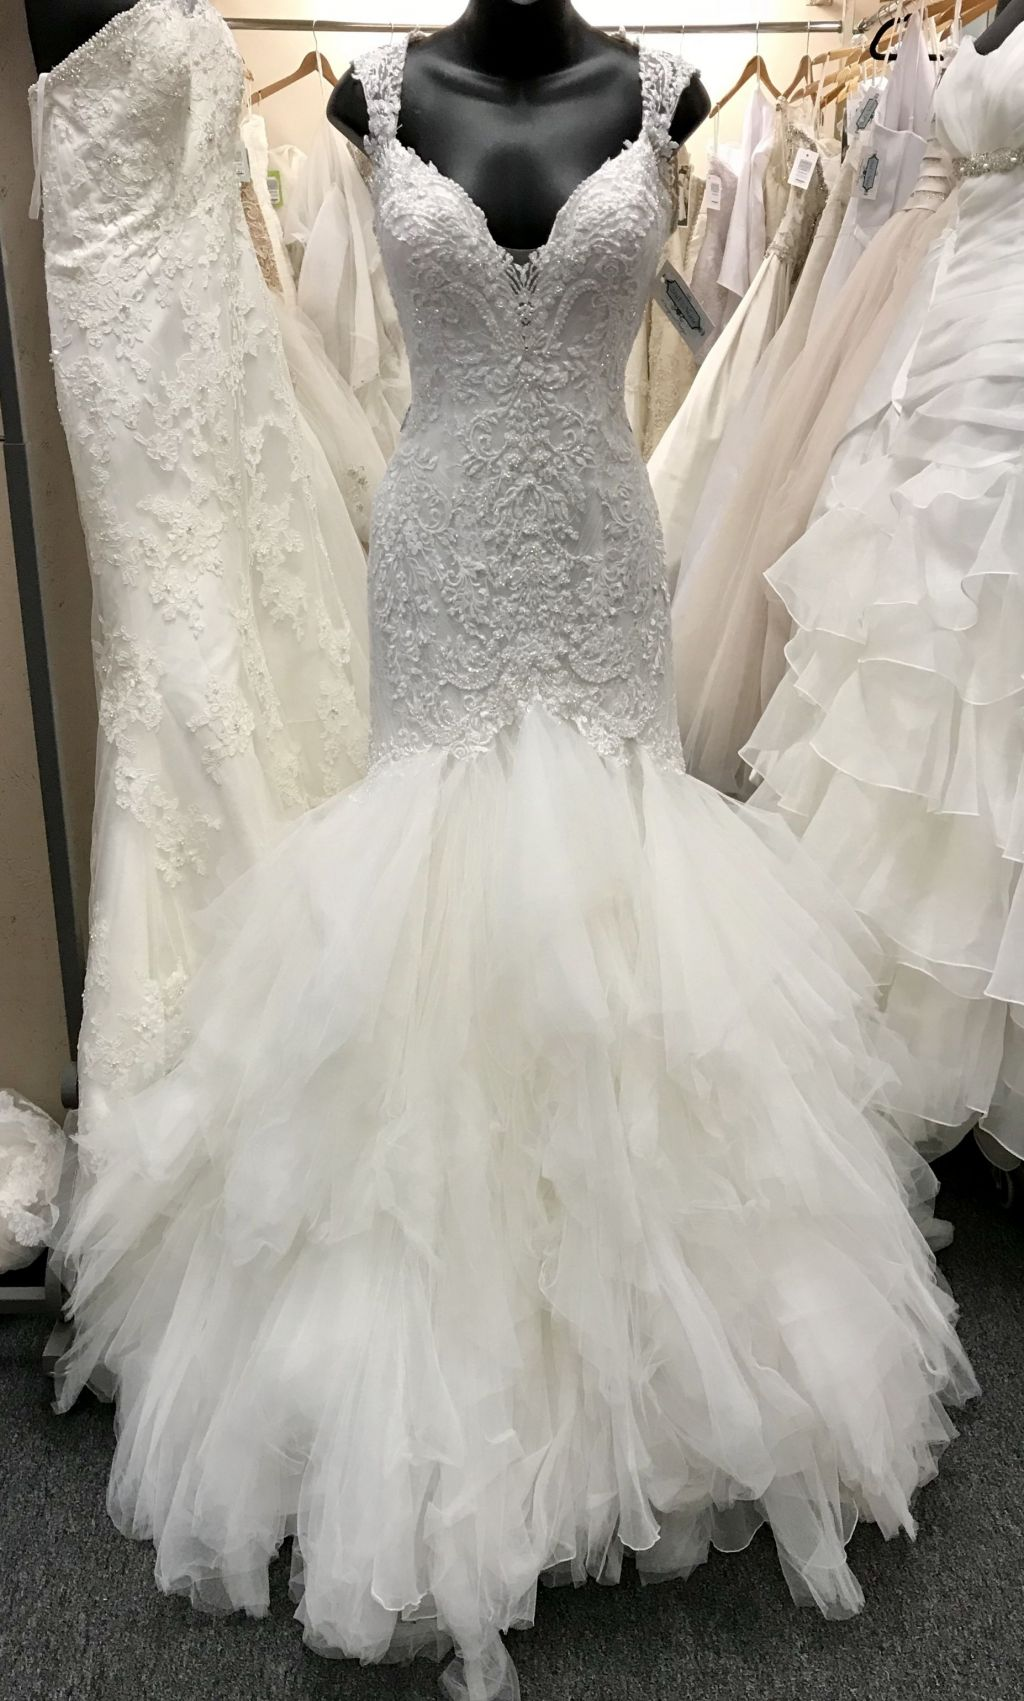 Justin alexander 8827 1 200 size 10 used wedding dresses for Pre owned wedding dresses